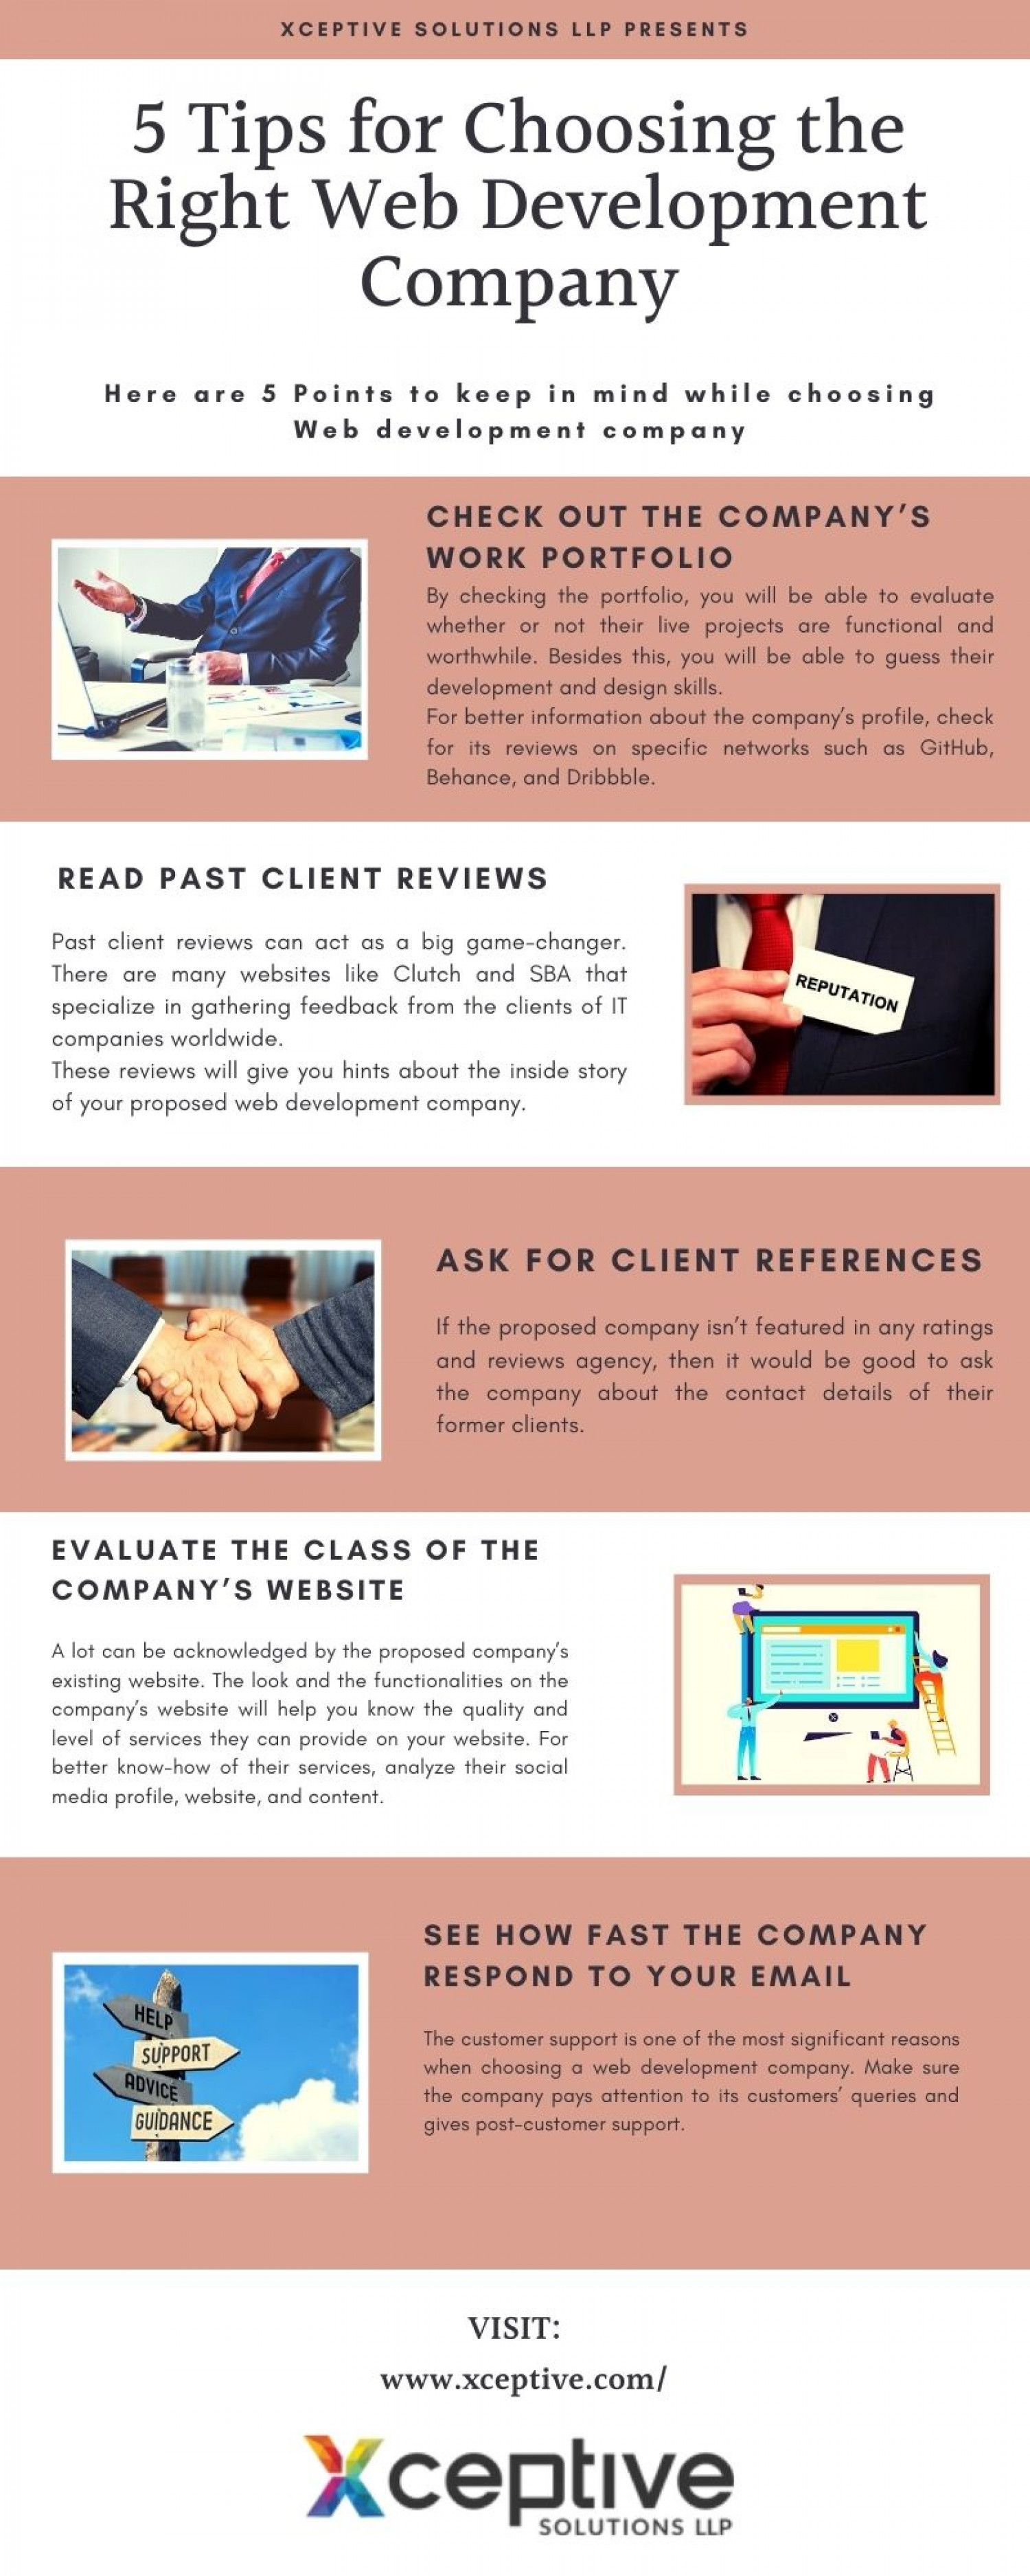 5 Tips for Choosing the Right Web Development Company Infographic